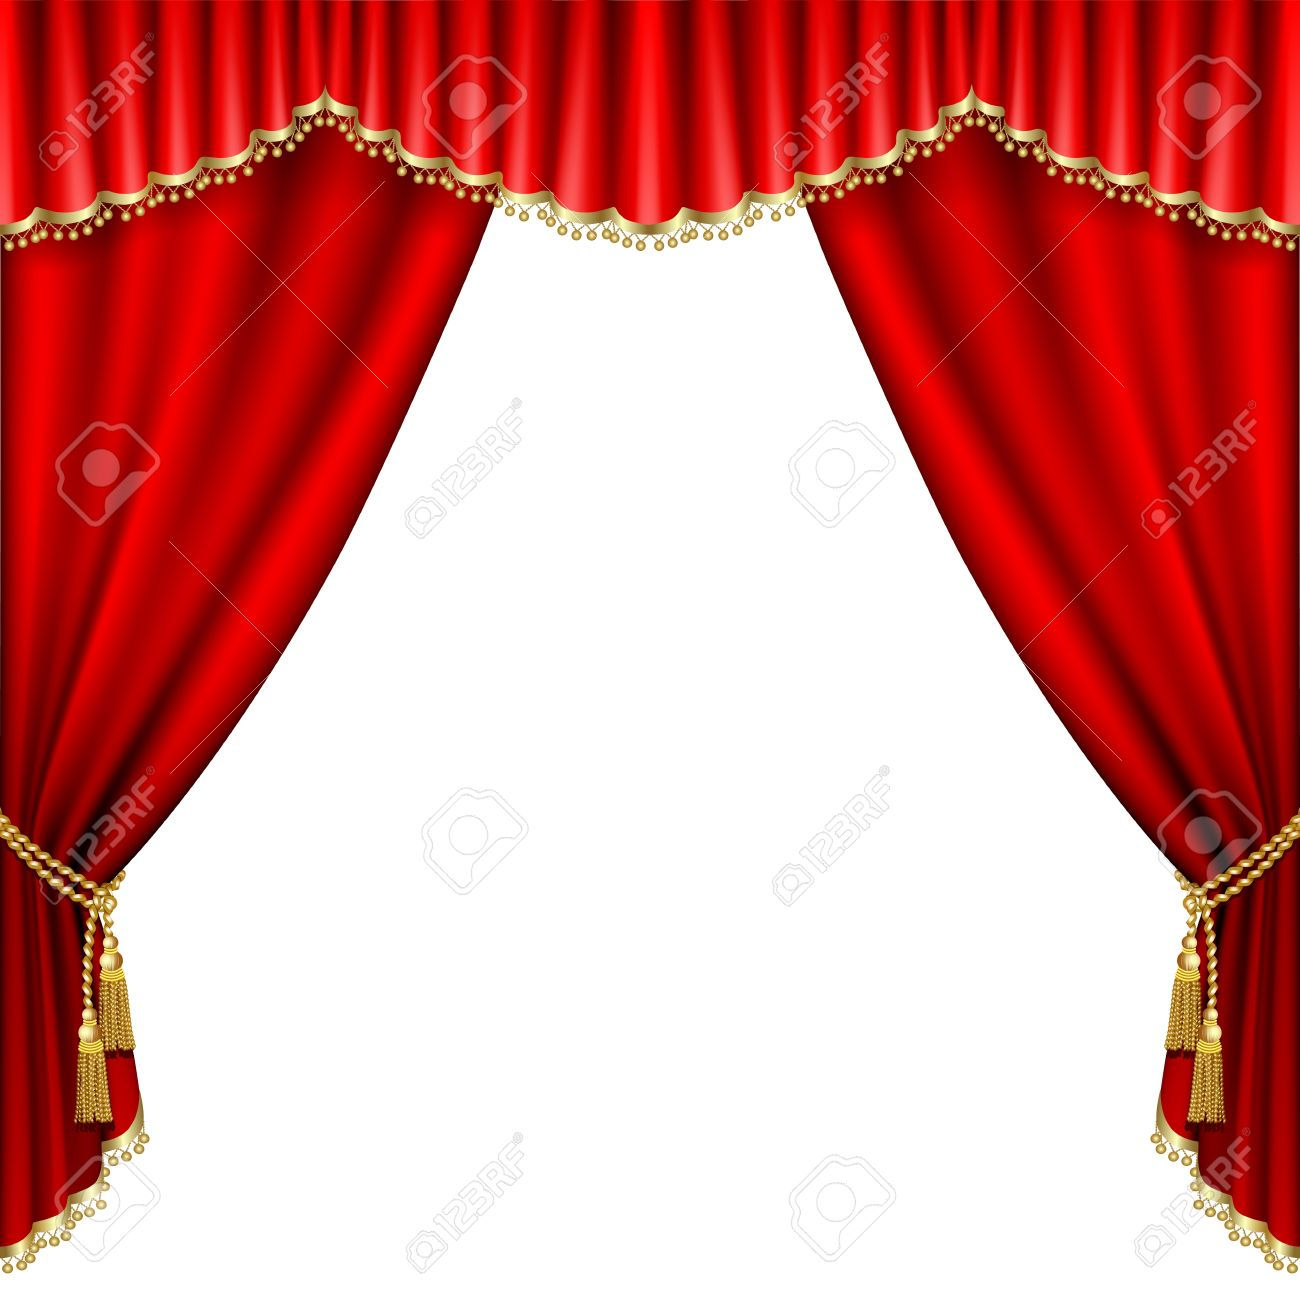 Theater curtains download free vector art stock graphics amp images - Curtains Theater Stage With Red Curtain Isolated On White Illustration